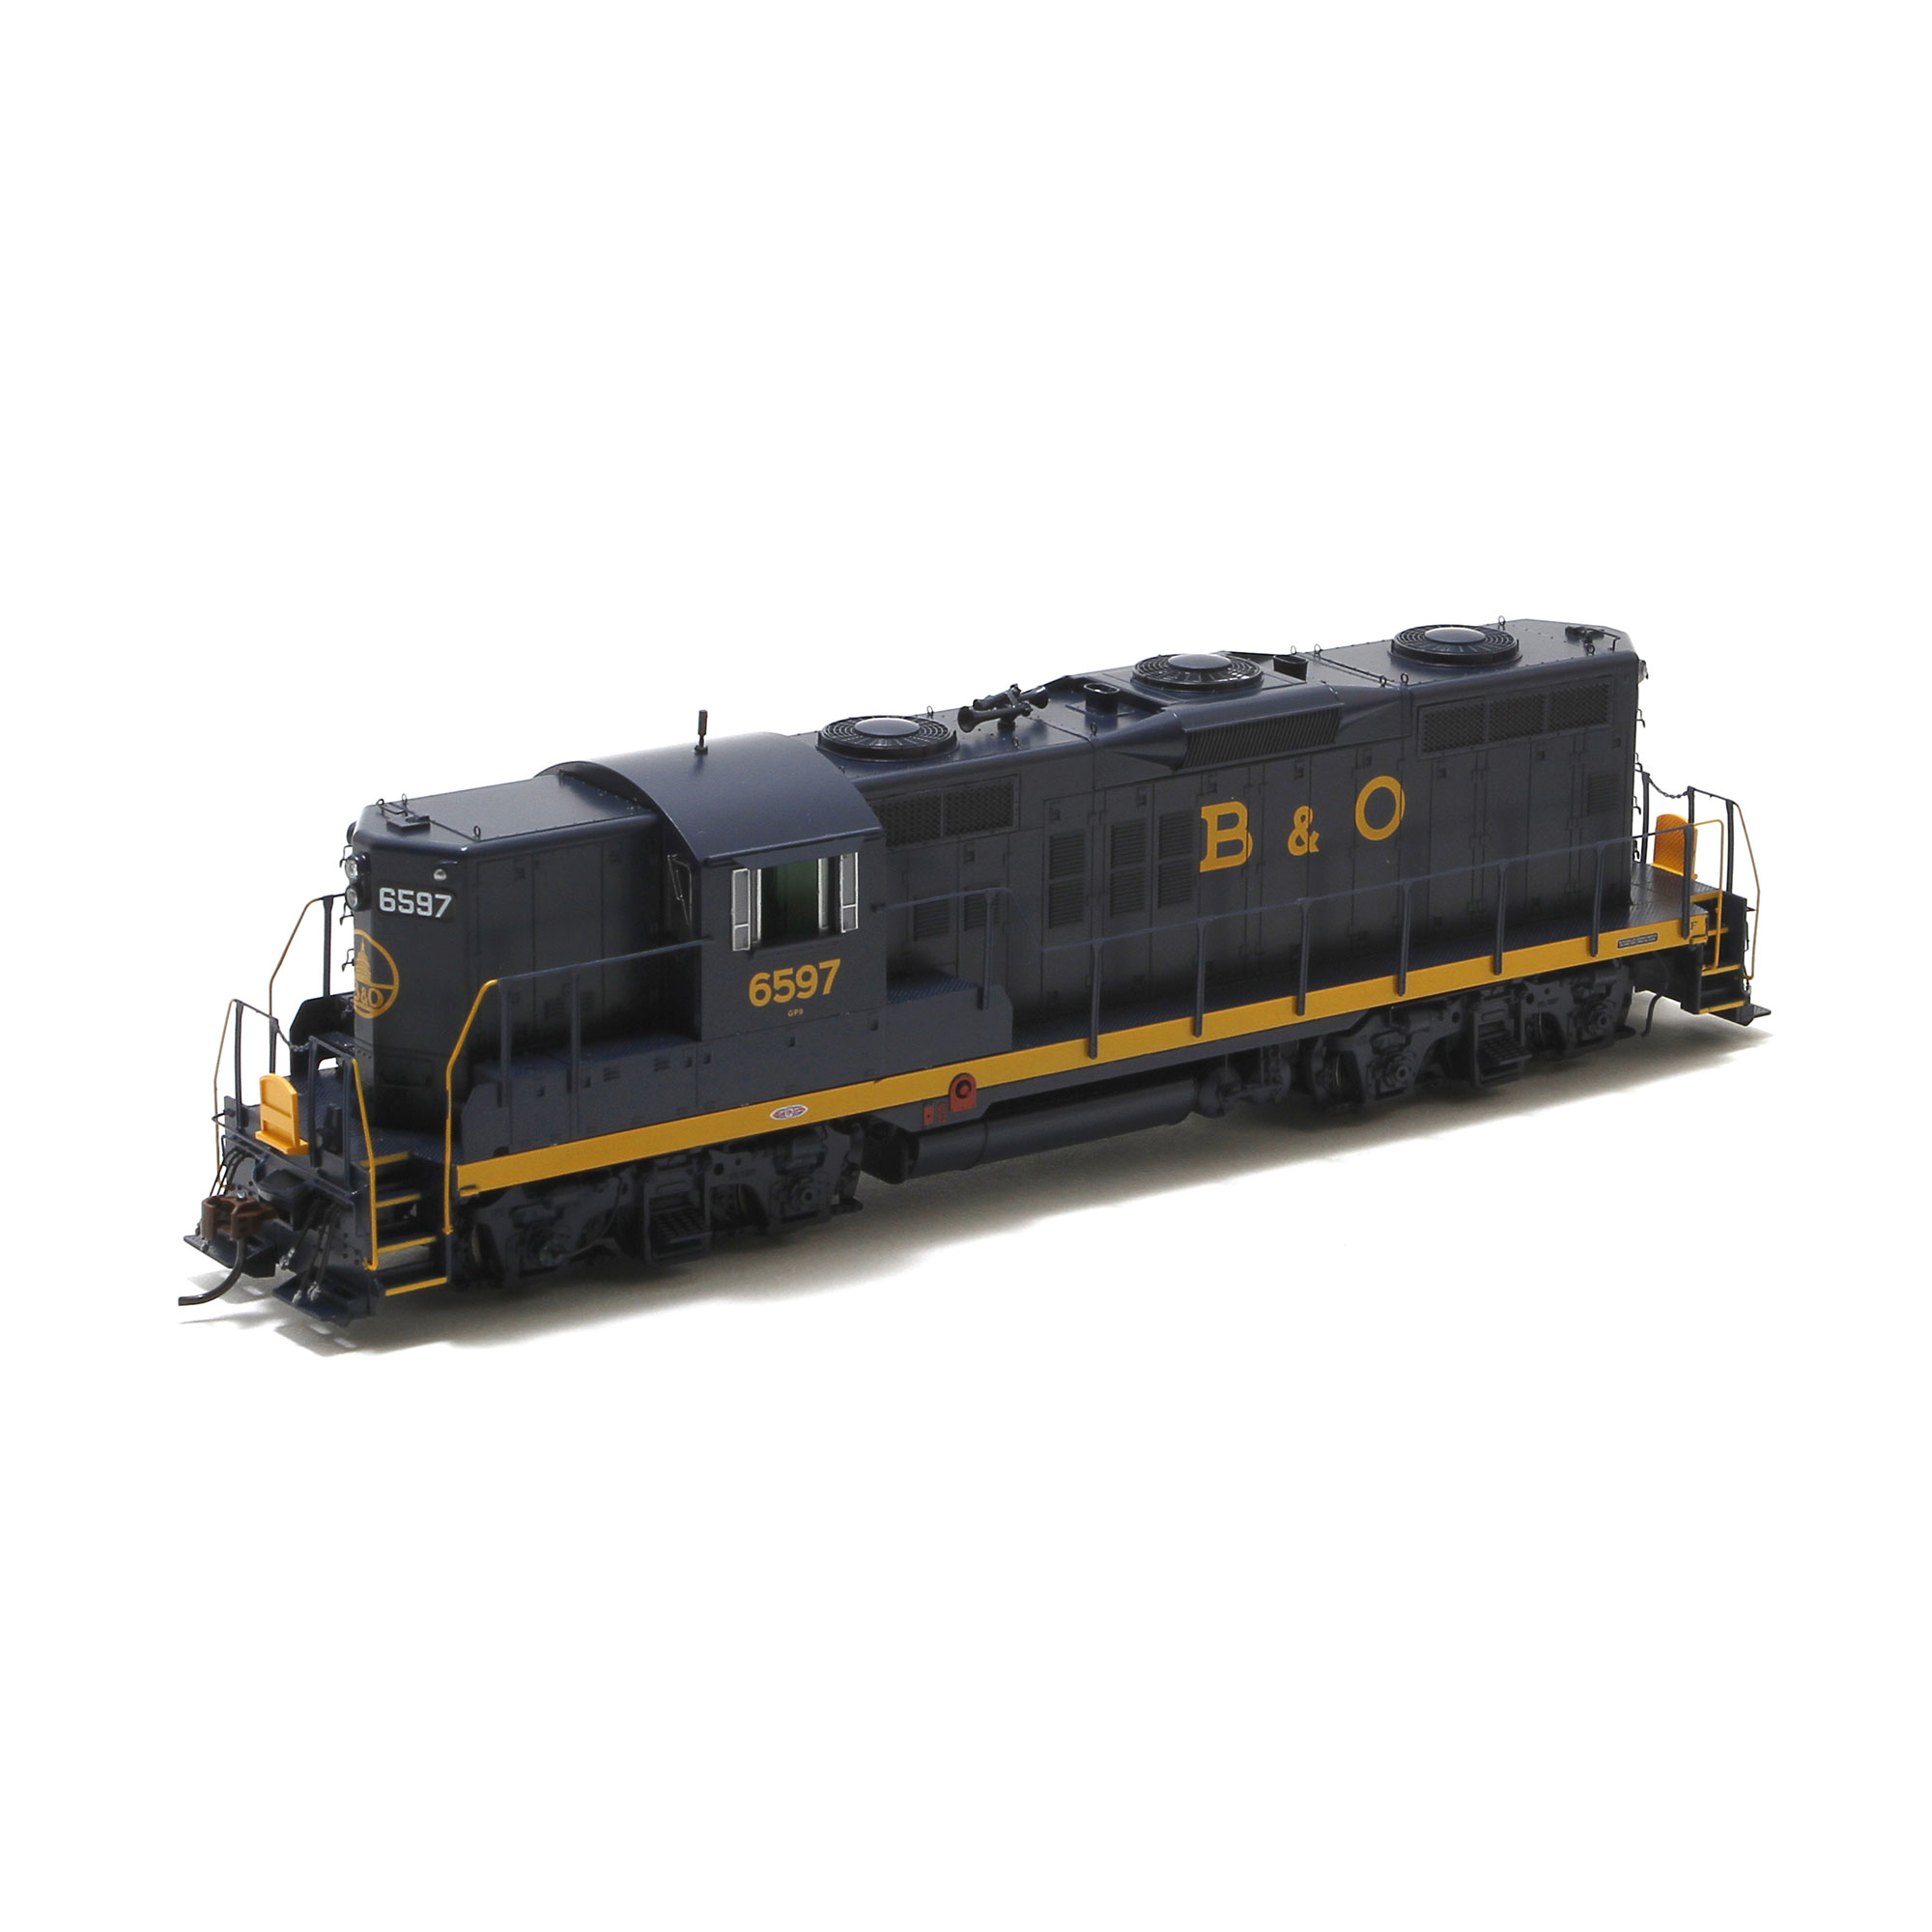 Ho Gp9 W Dcc Sound B O 6597 Athg62702 Athearn Trains